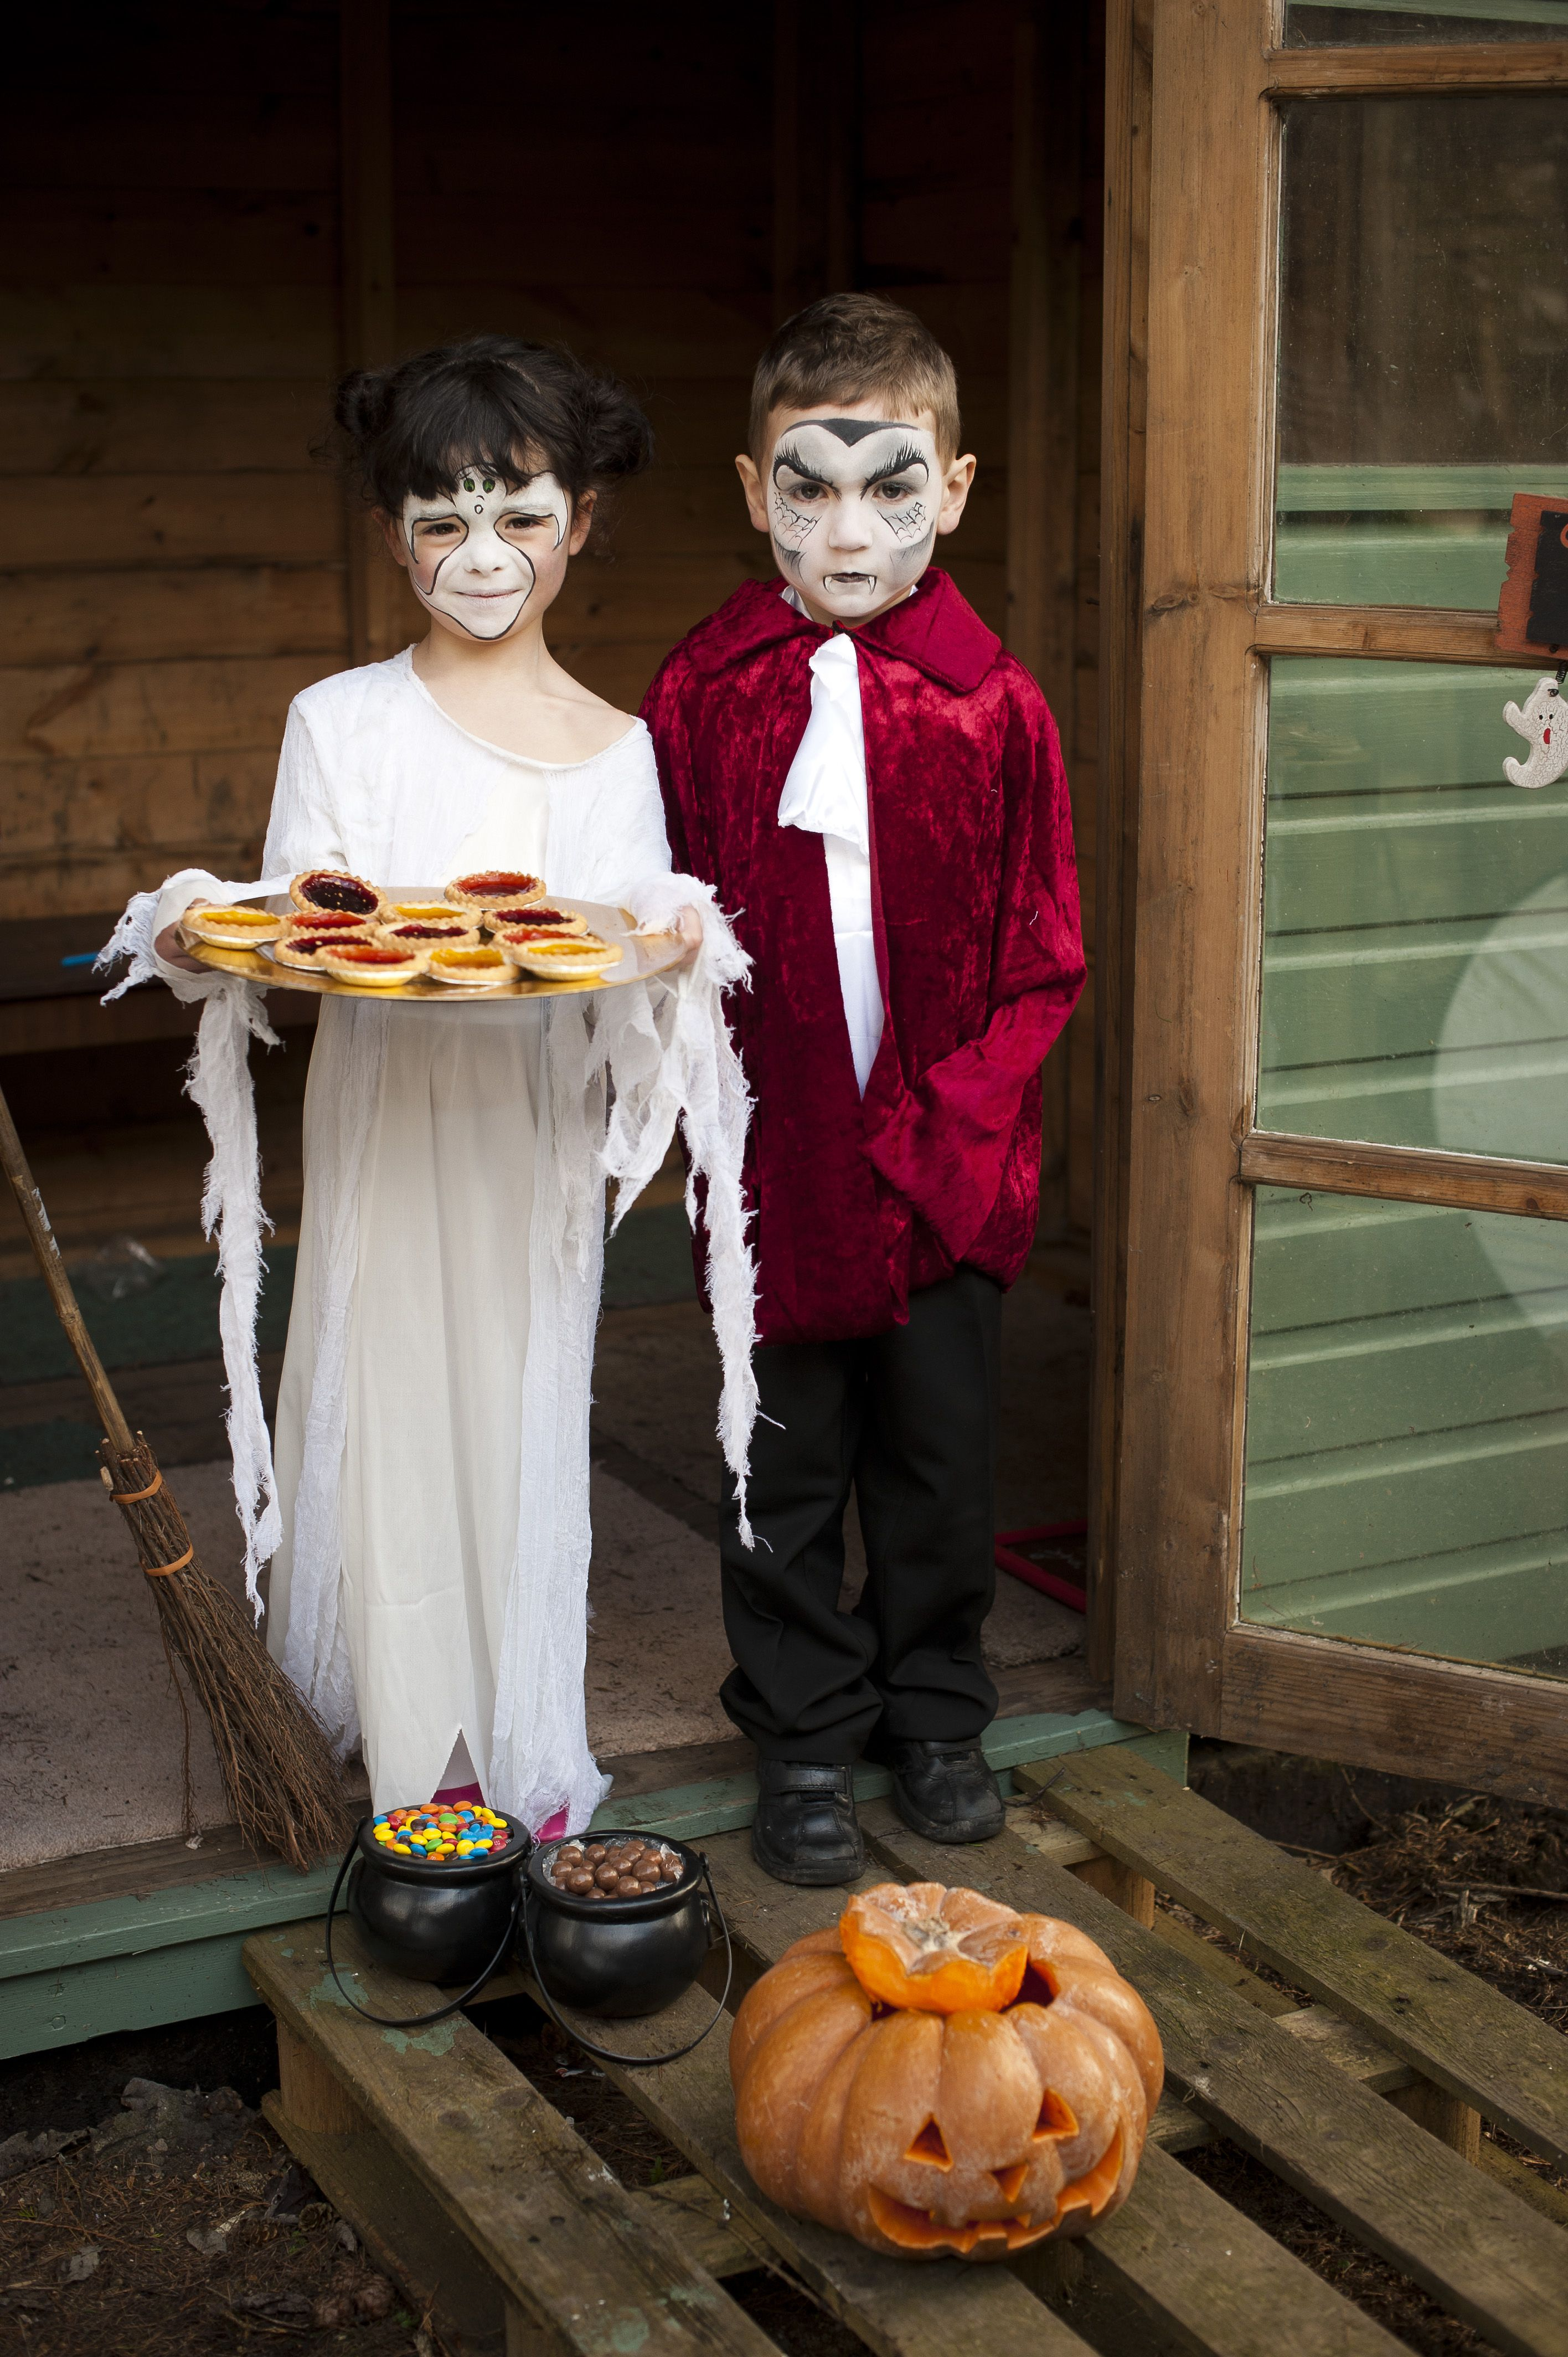 Spooky ghost & vampire Perfect for Halloween! facepaint